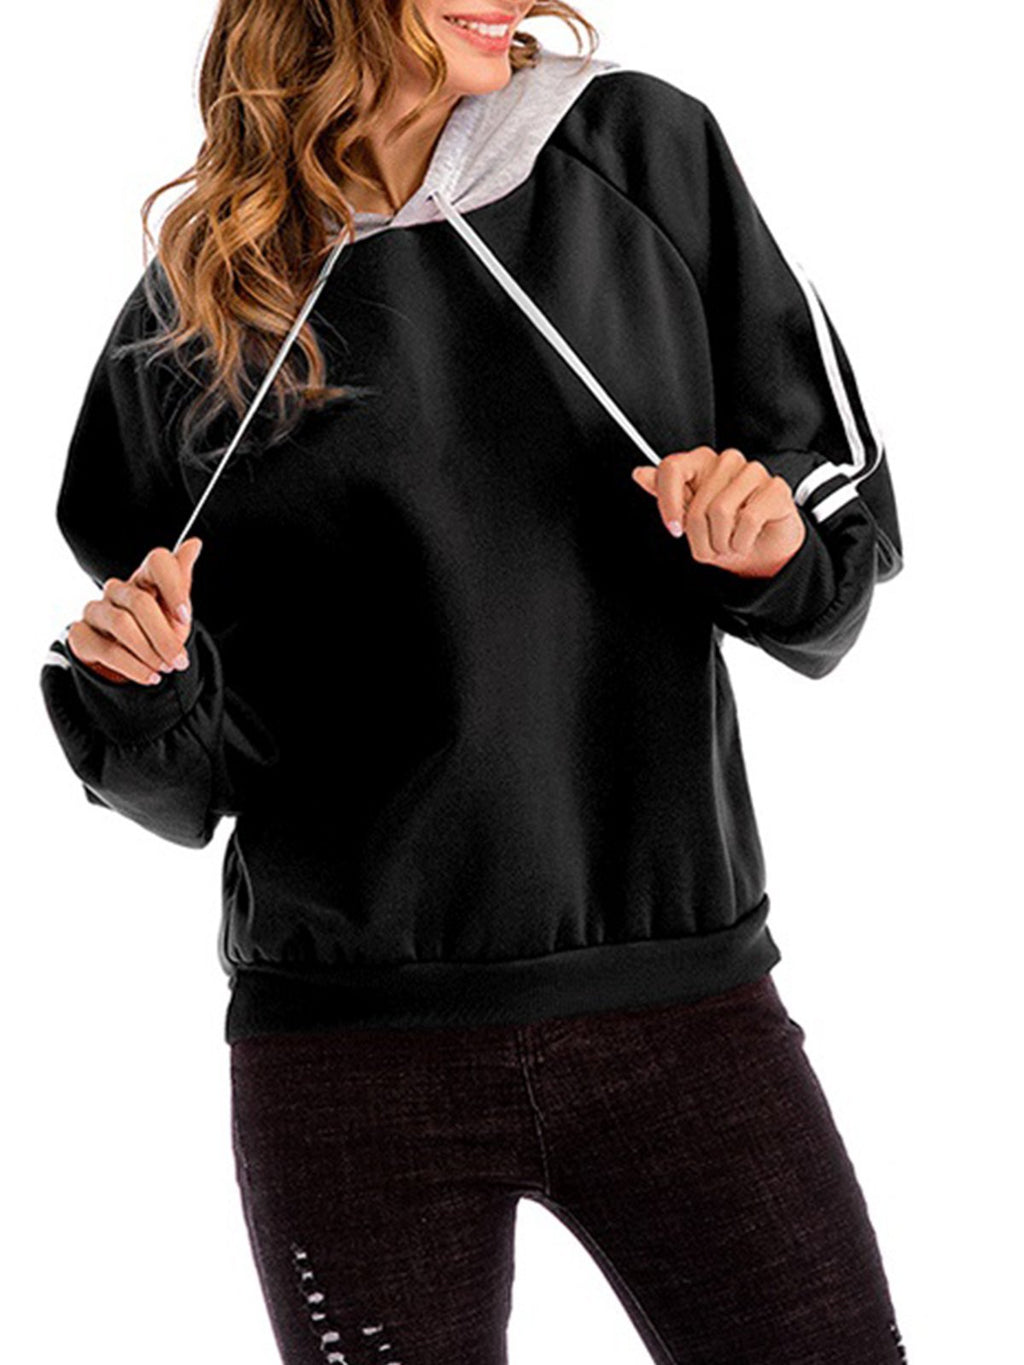 Contrast Striped Sleeve Plus Size Hoodie Sweatshirt - CandyShe